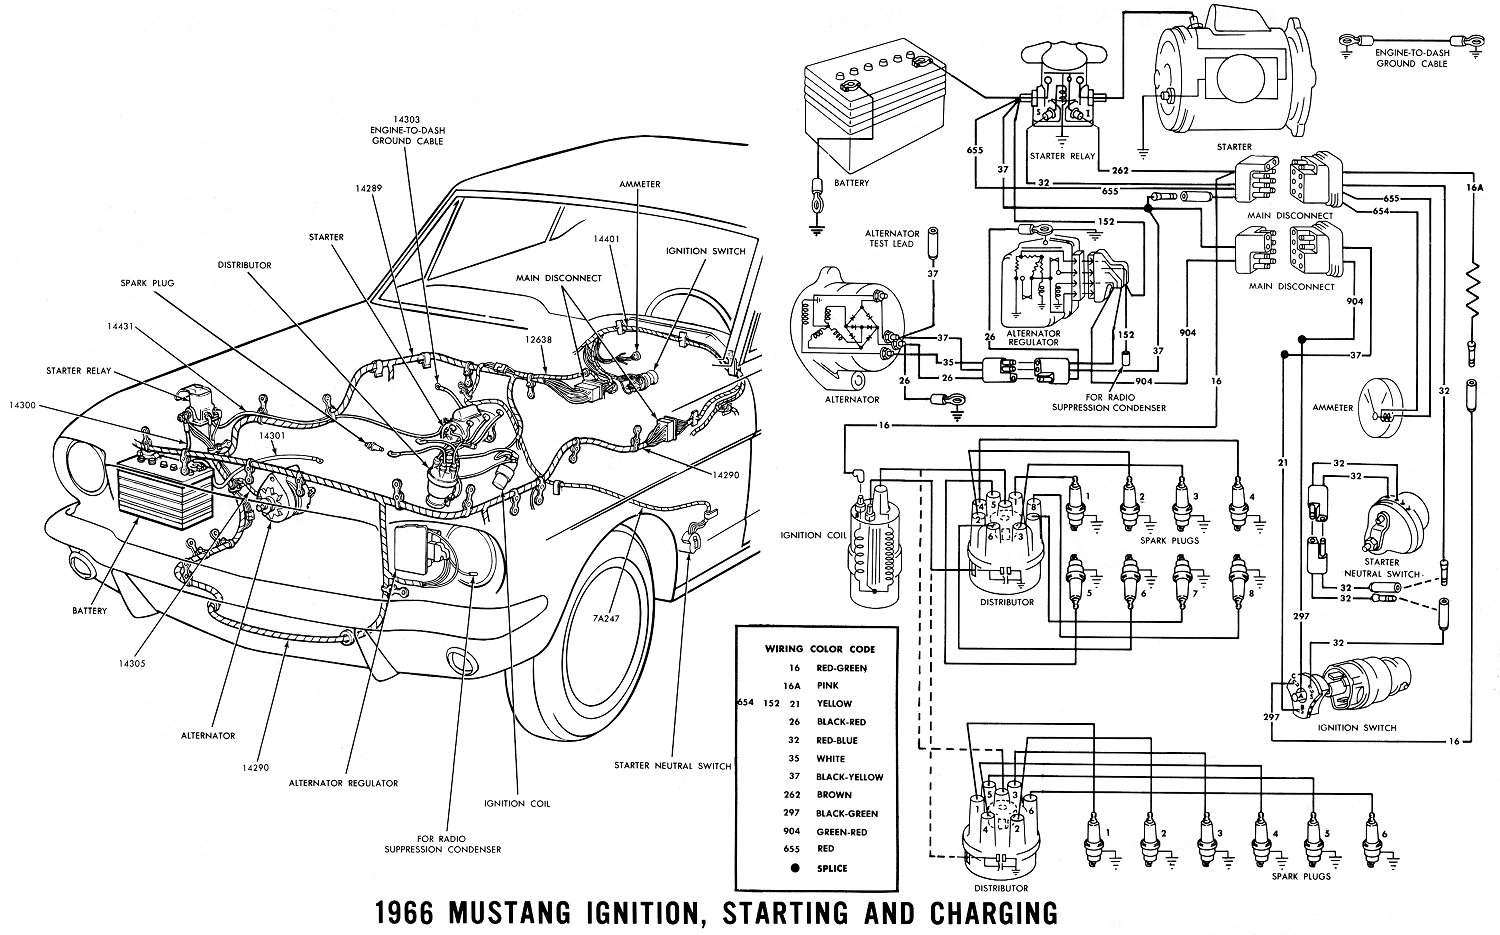 66ignit 1966 mustang wiring diagrams average joe restoration engine wiring diagram 1967 mustang v8 at mifinder.co